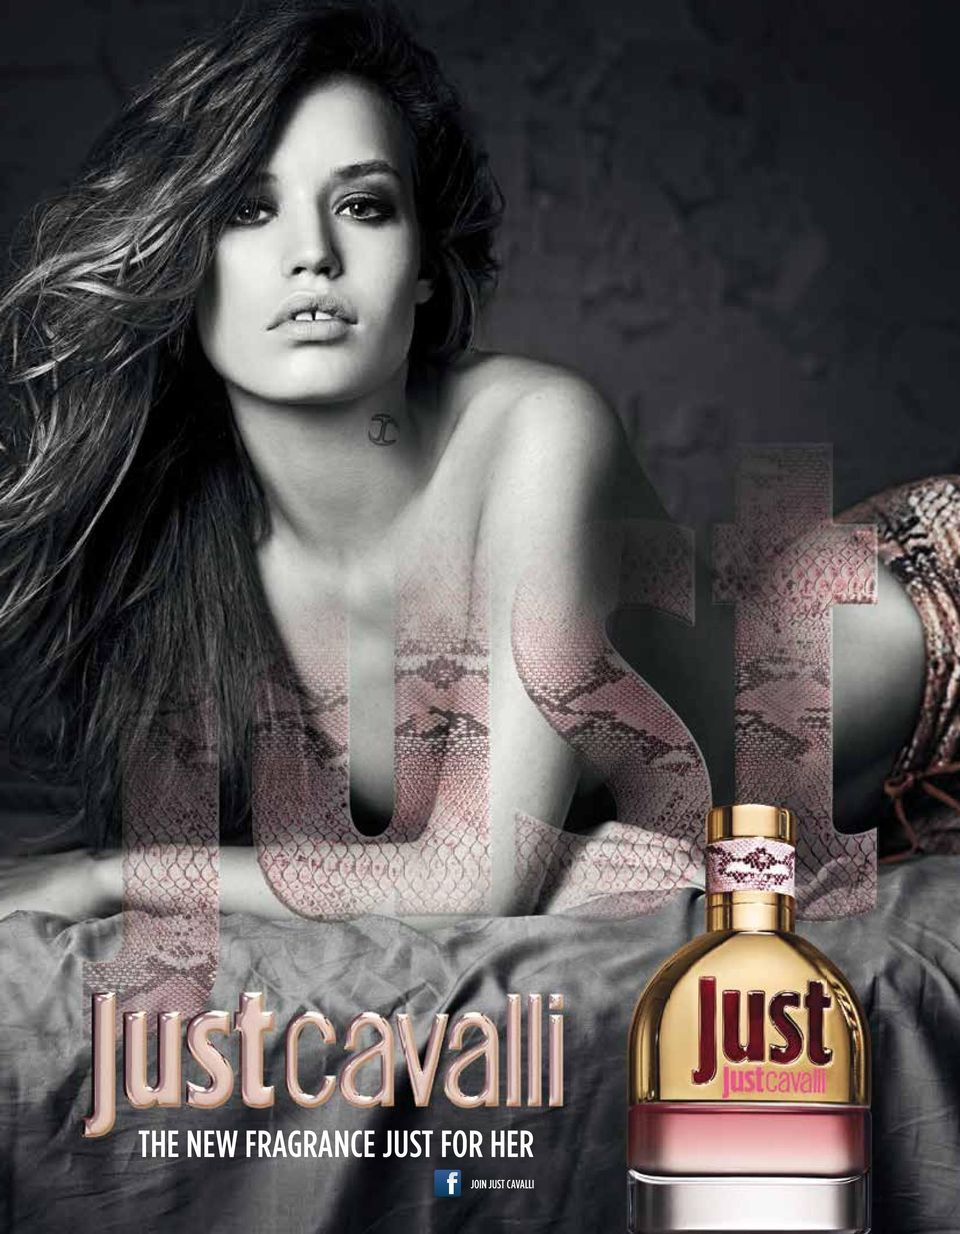 S 11 THE NEW FRAGRANCE